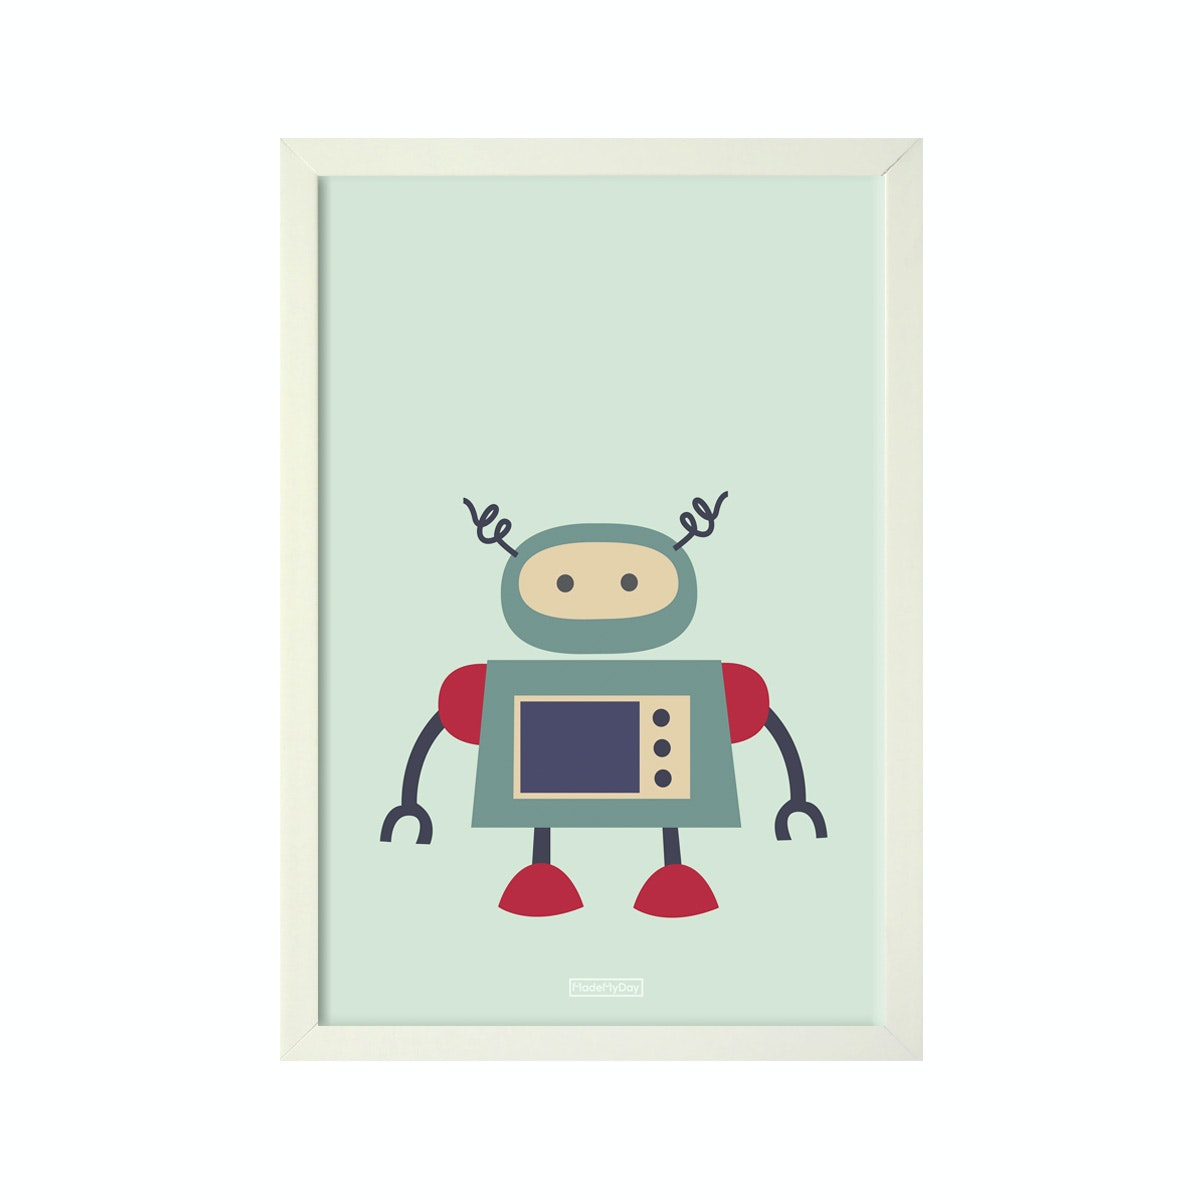 MadeMyDay Weebo The Robot(20X30cm)